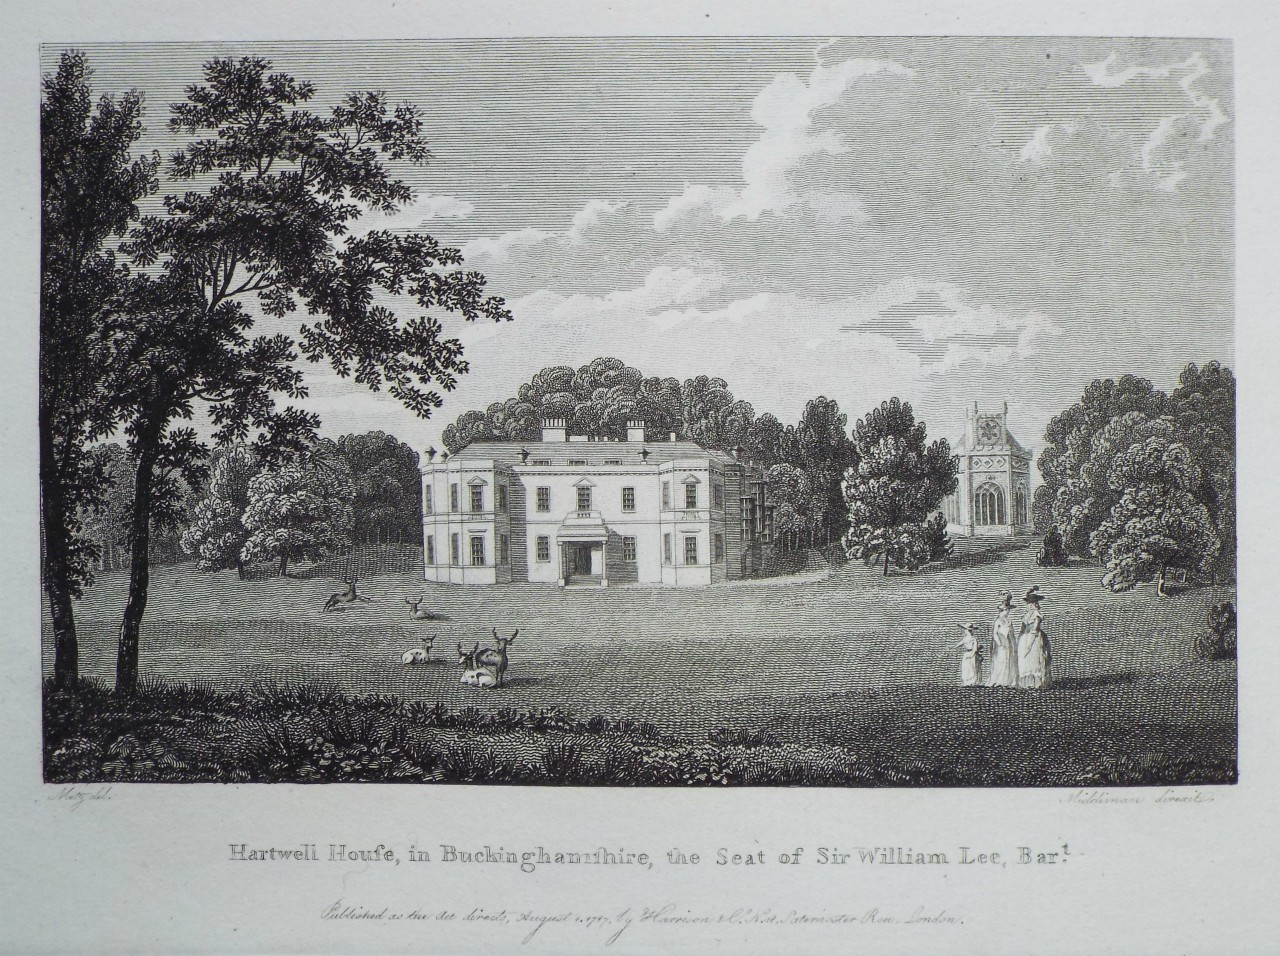 Print - Hartwell House, in Buckinghamshire, the Seat of Sir William Lee, Bart. -